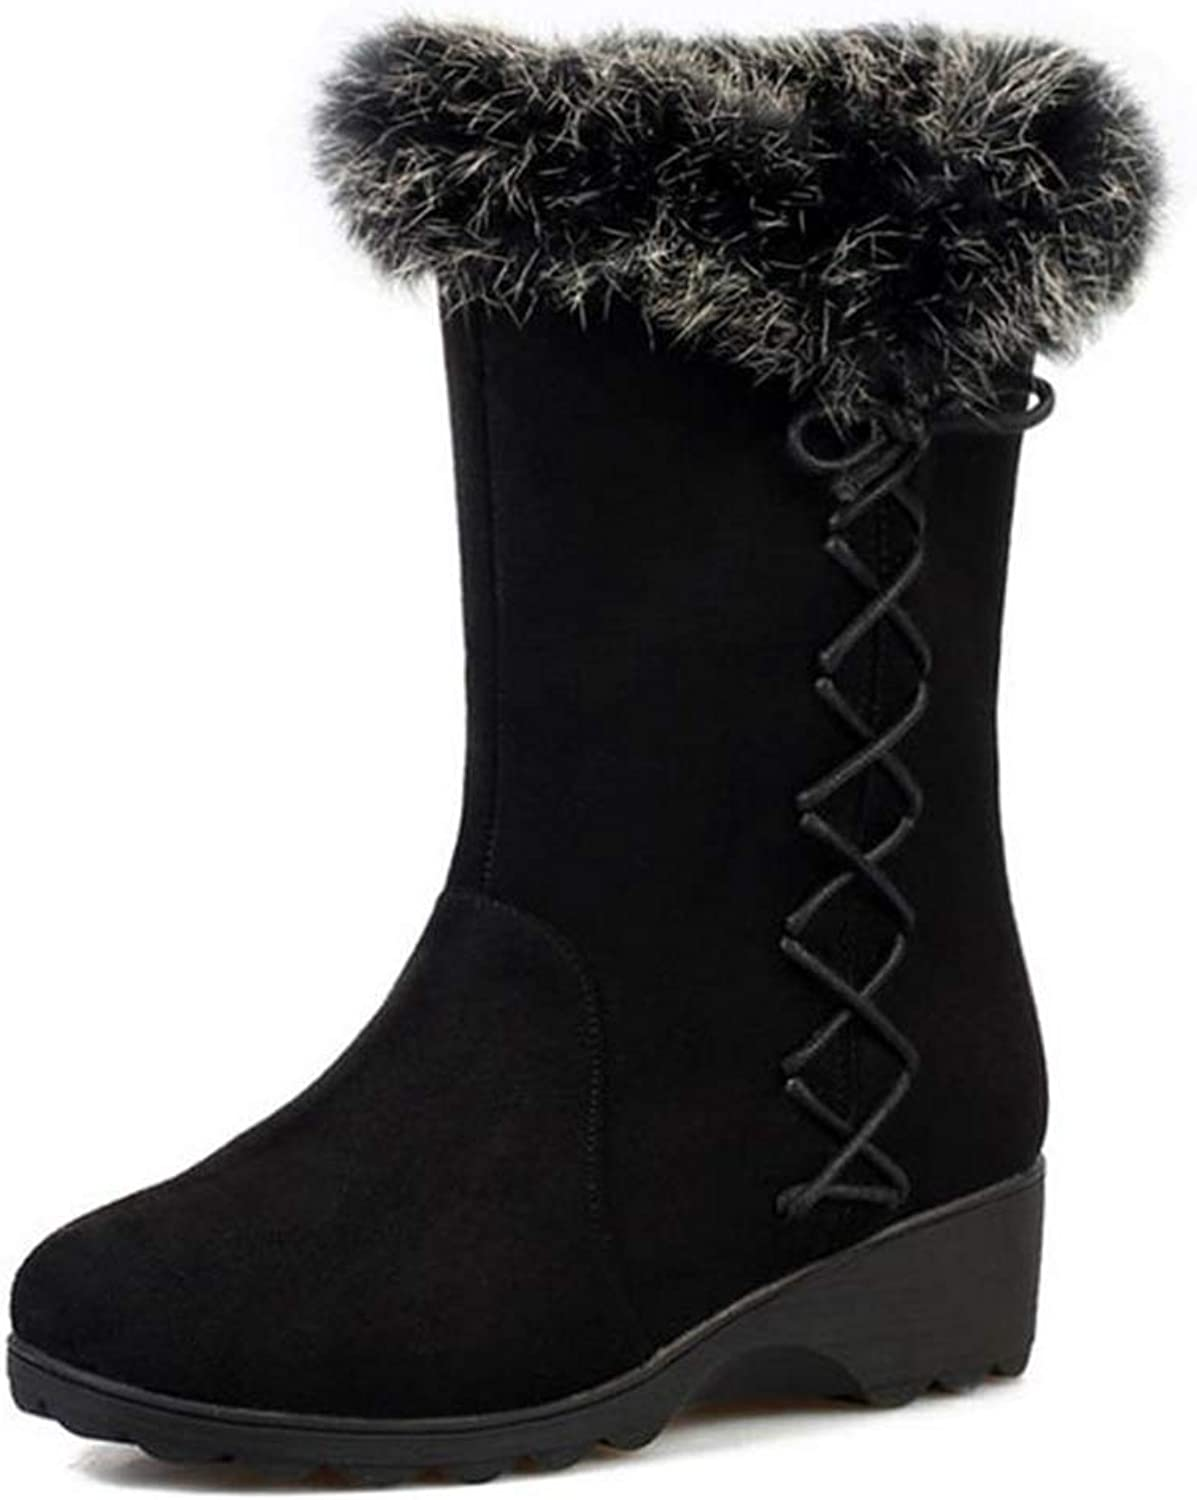 FAY WATERS Womens Sweet Warm Short Boots Thick Fur Chunky Mid Heel Round Toe Cross Strap Winter Snow Mid Calf Booties